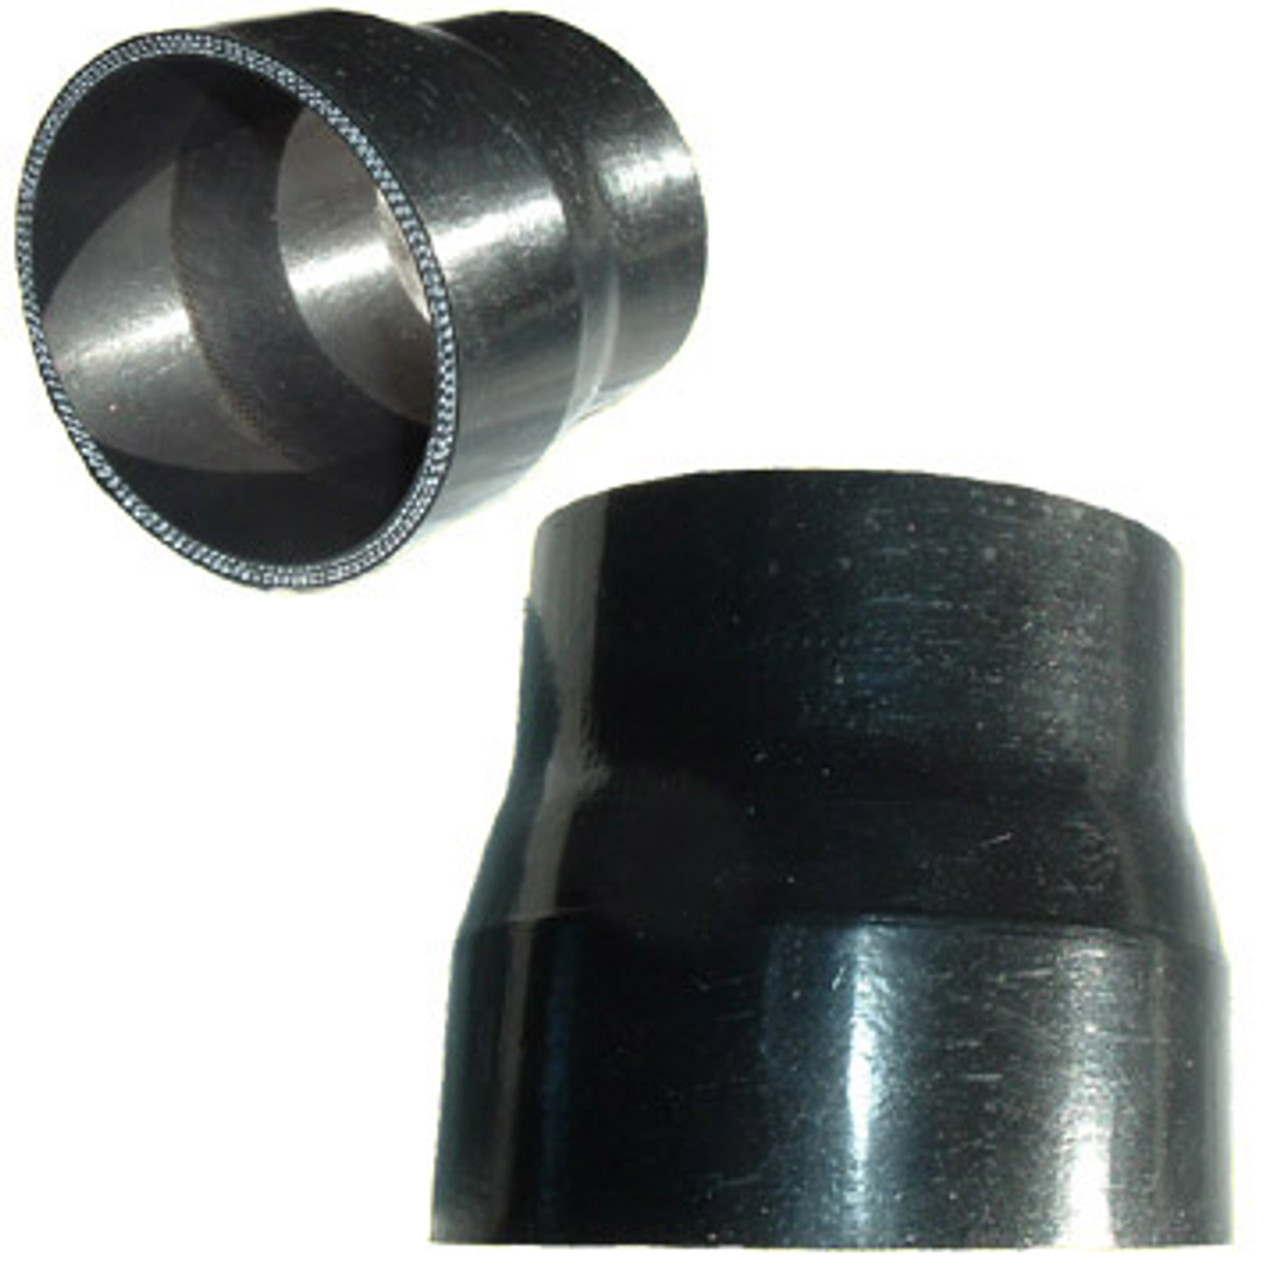 Reducer Boot 3 inch to 2.25 inch